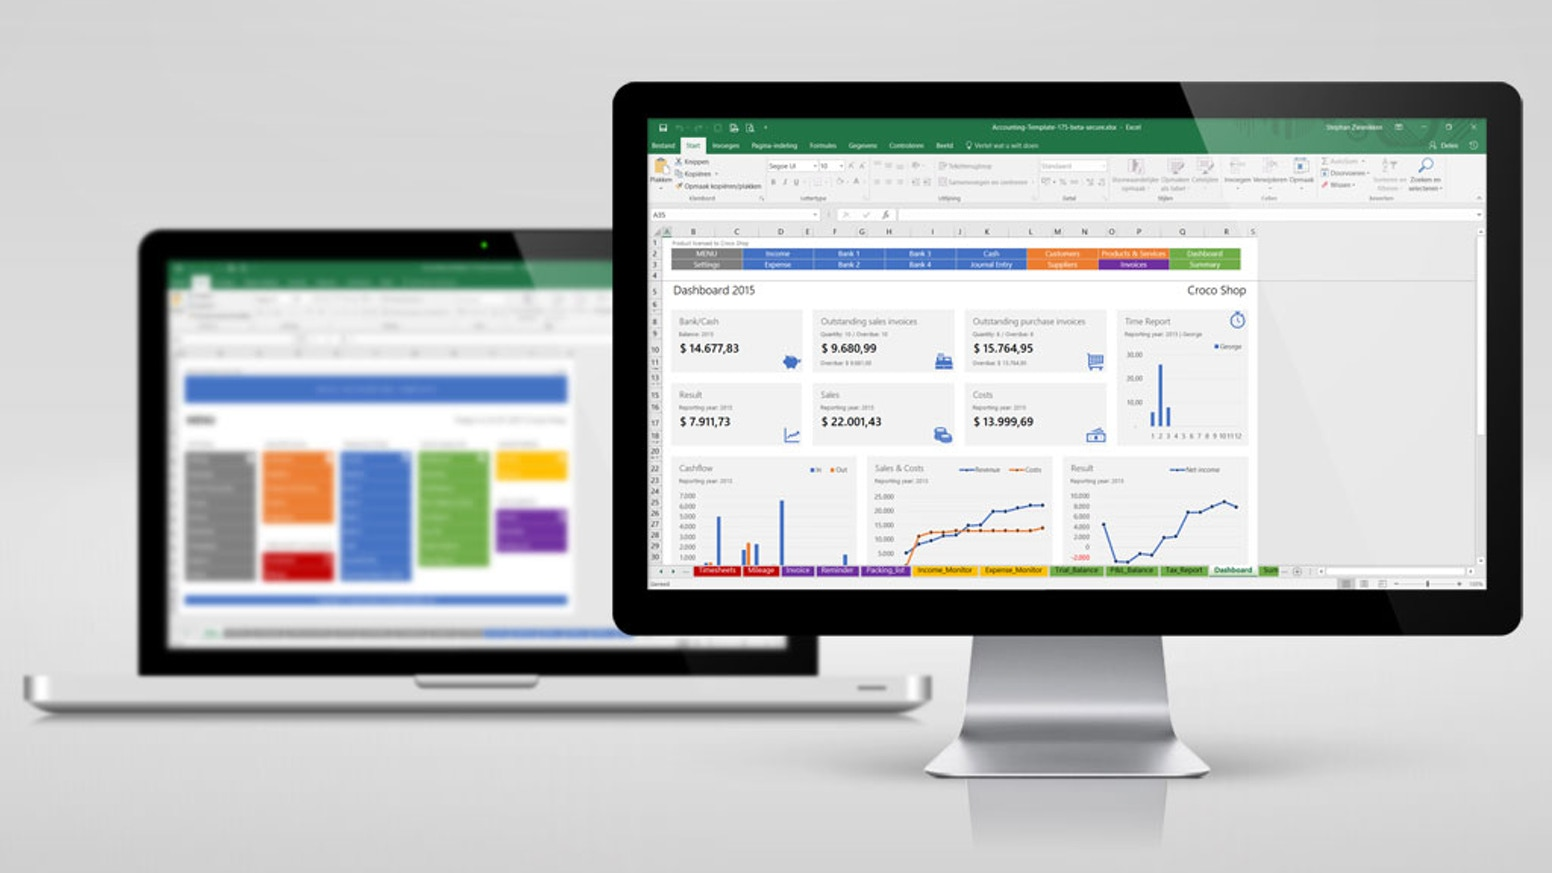 Excel accounting template by stephan zwanikken kickstarter the all in one accounting solution in excel for small business owners cheaphphosting Images